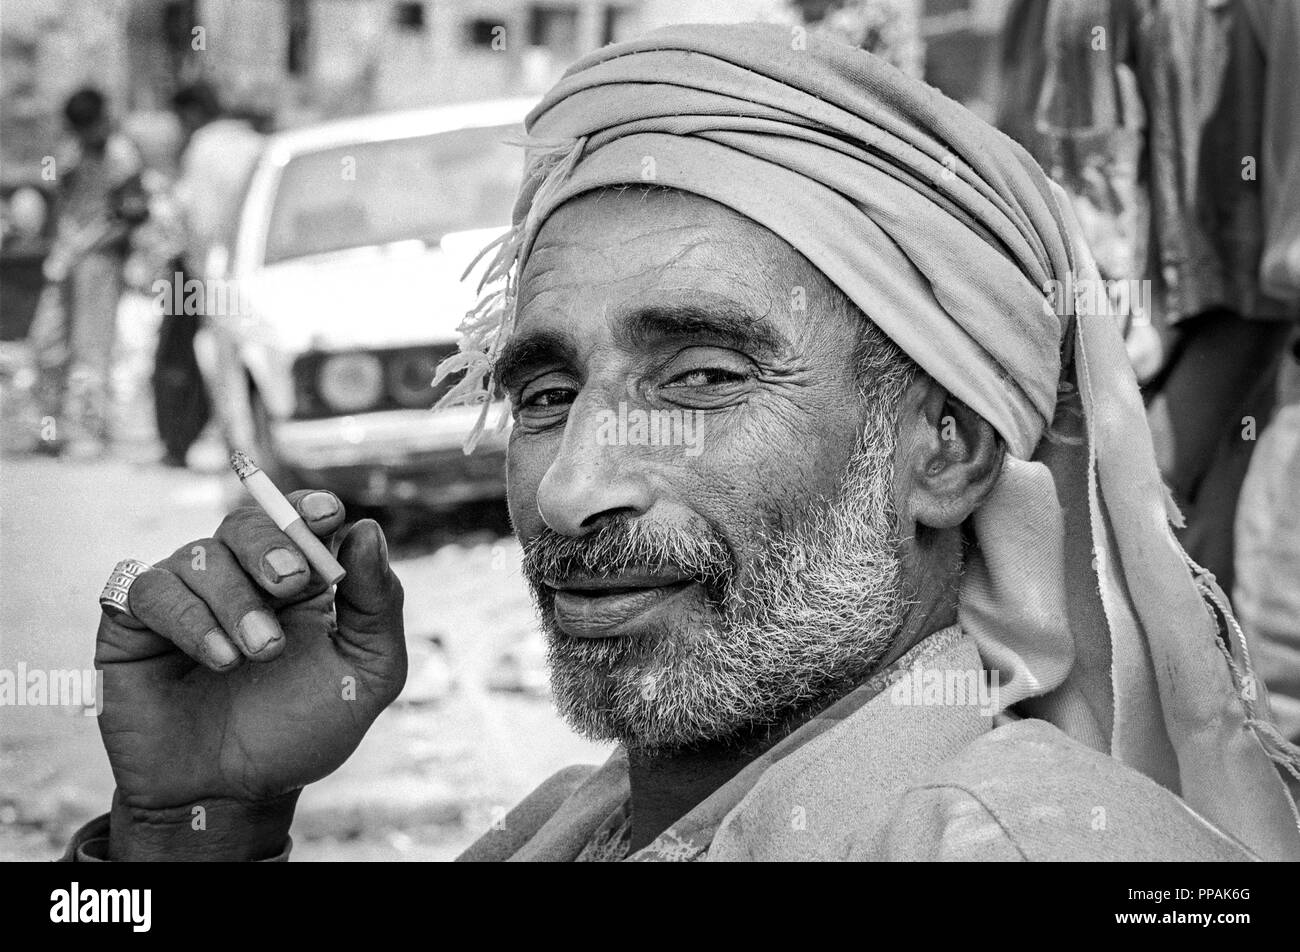 Portrait of a man smoking a cigarette. Palestinian Refugee Camps of Sabra and Shatila, Beirut, Lebanon 1998. - Stock Image